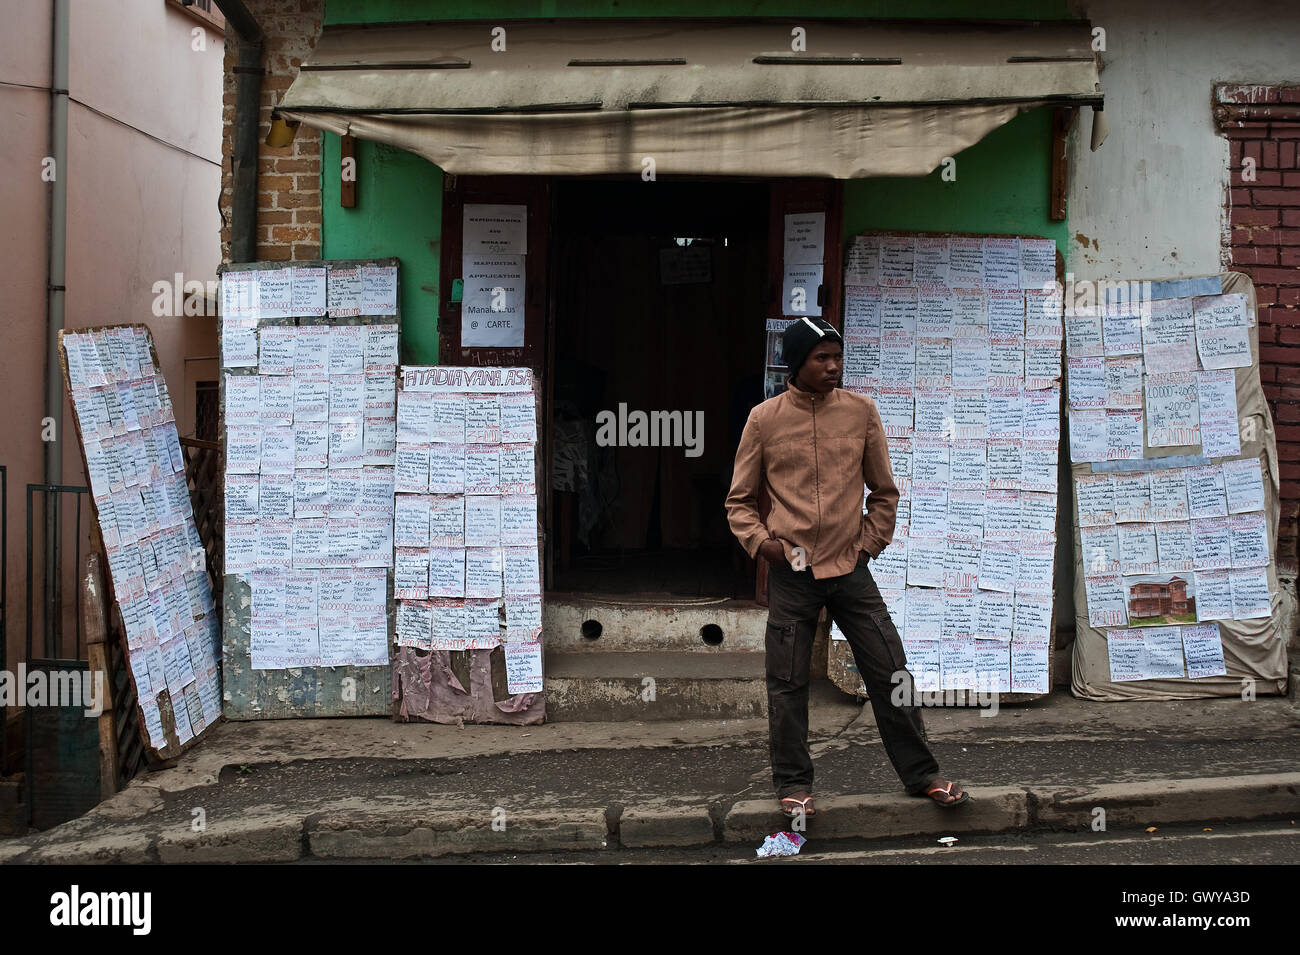 Immobilienagentur (Madagaskar) Stockbild